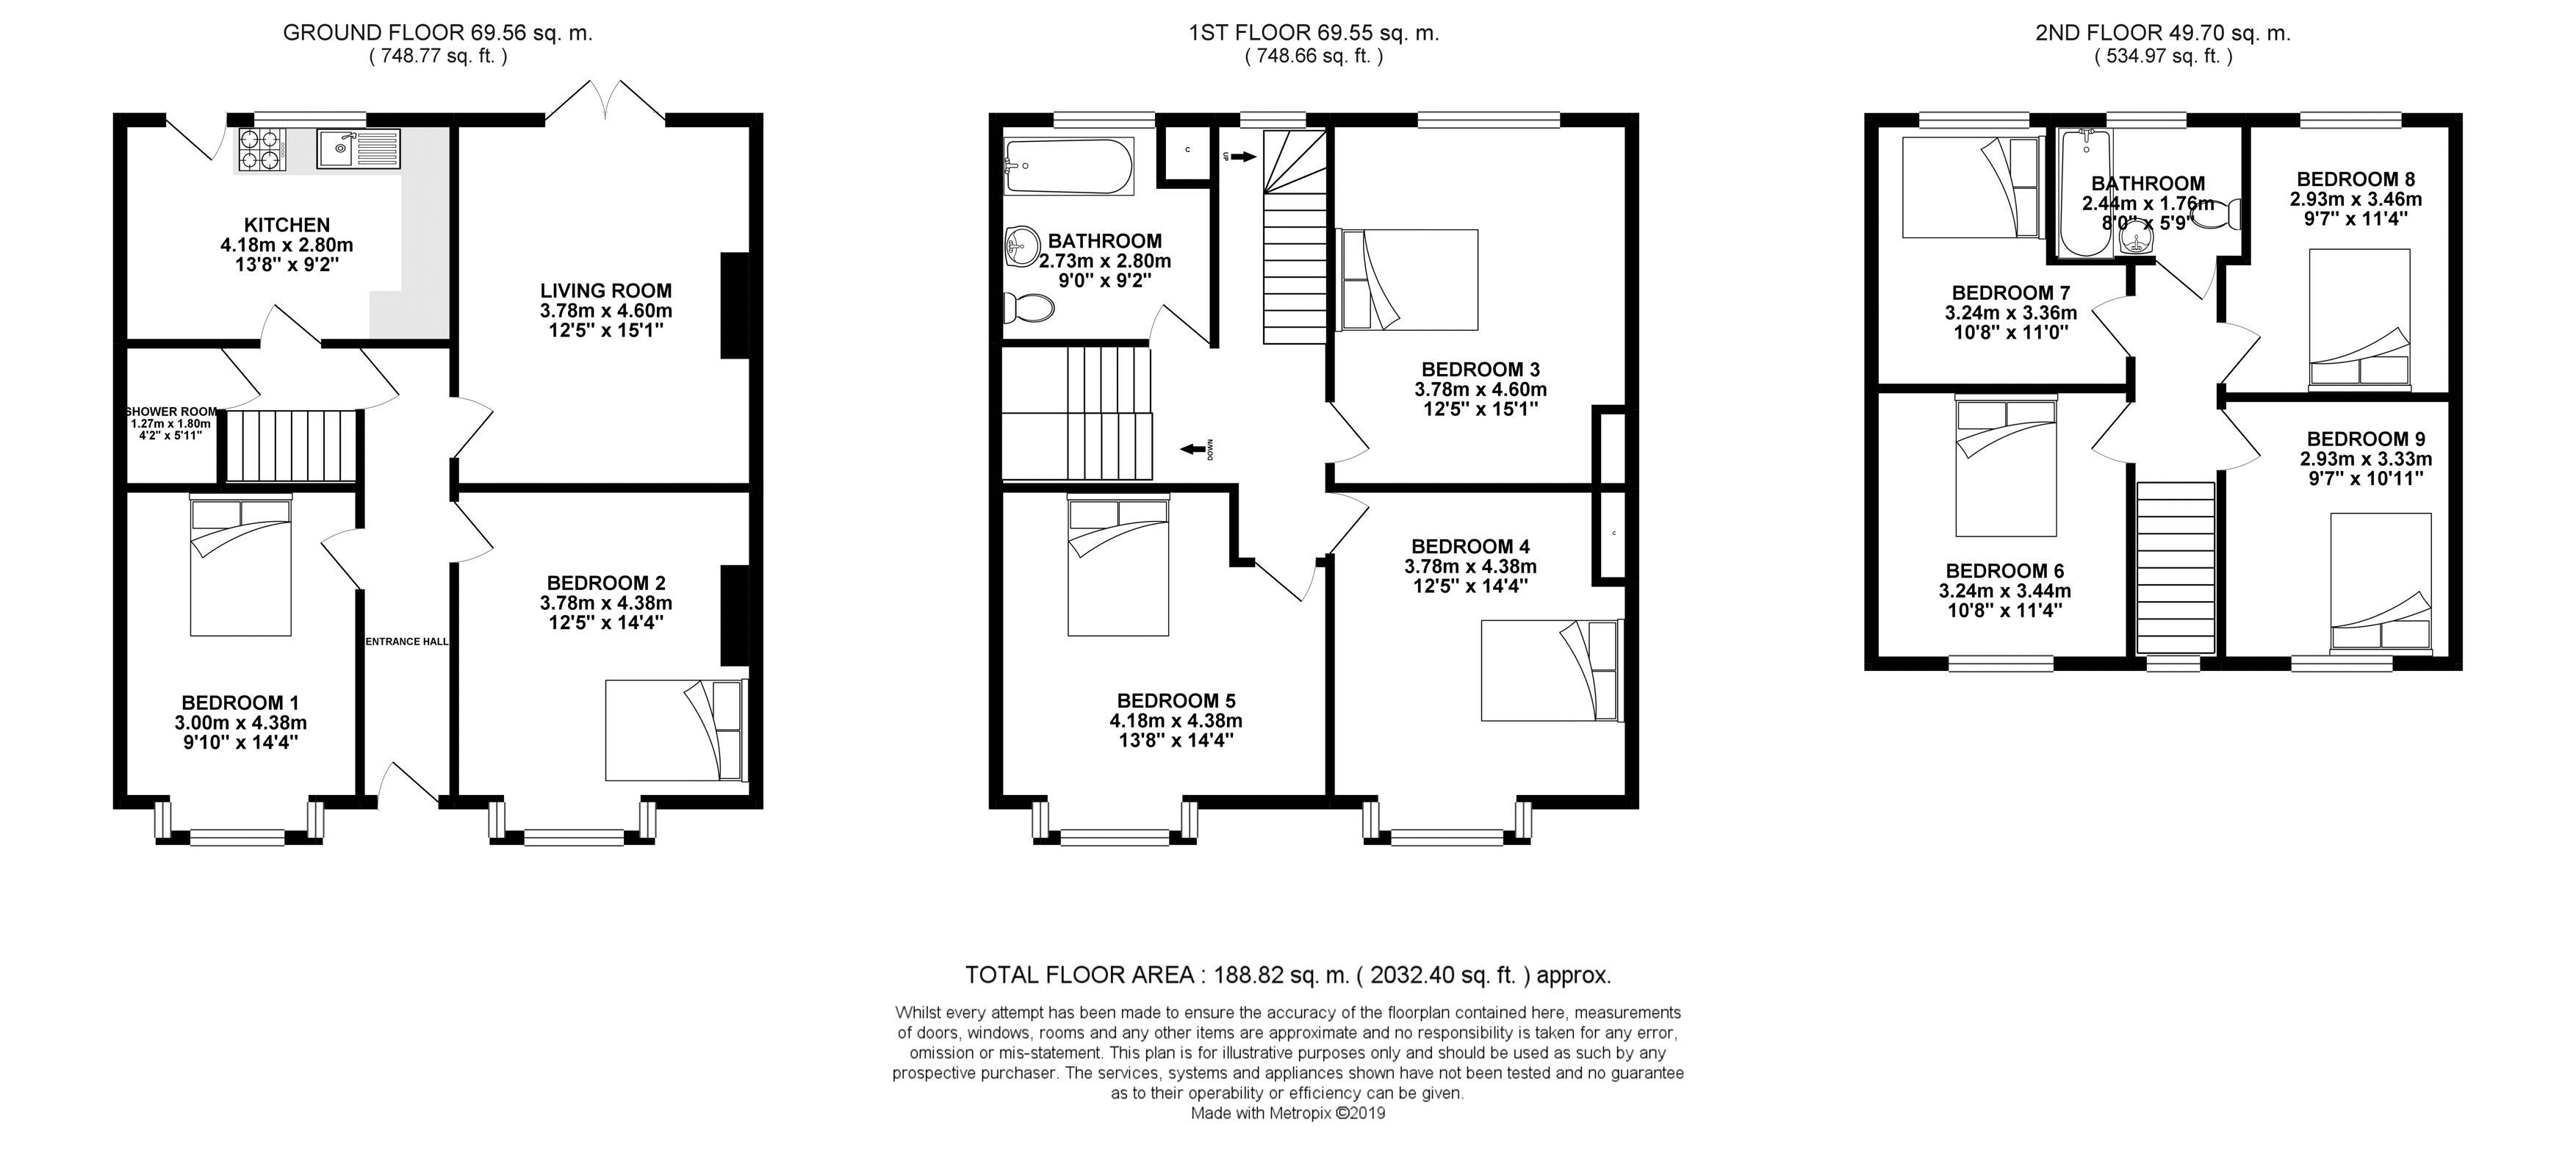 Floor plans for Coombe Road, Brighton property for sale in Coombe Road, Brighton by Coapt